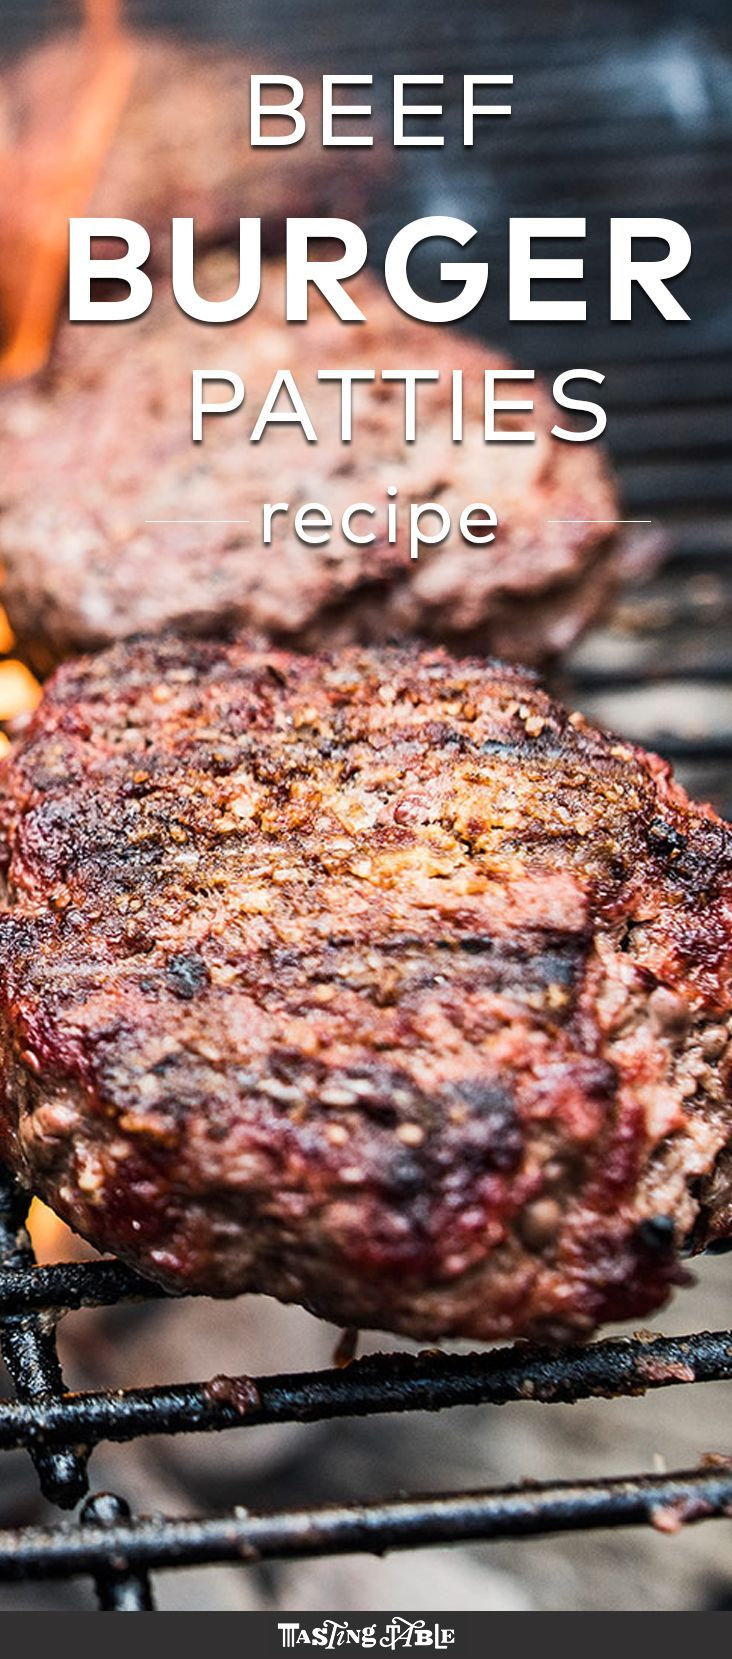 Our perfect burger blend is a combo of beef chuck, brisket and short ribs.